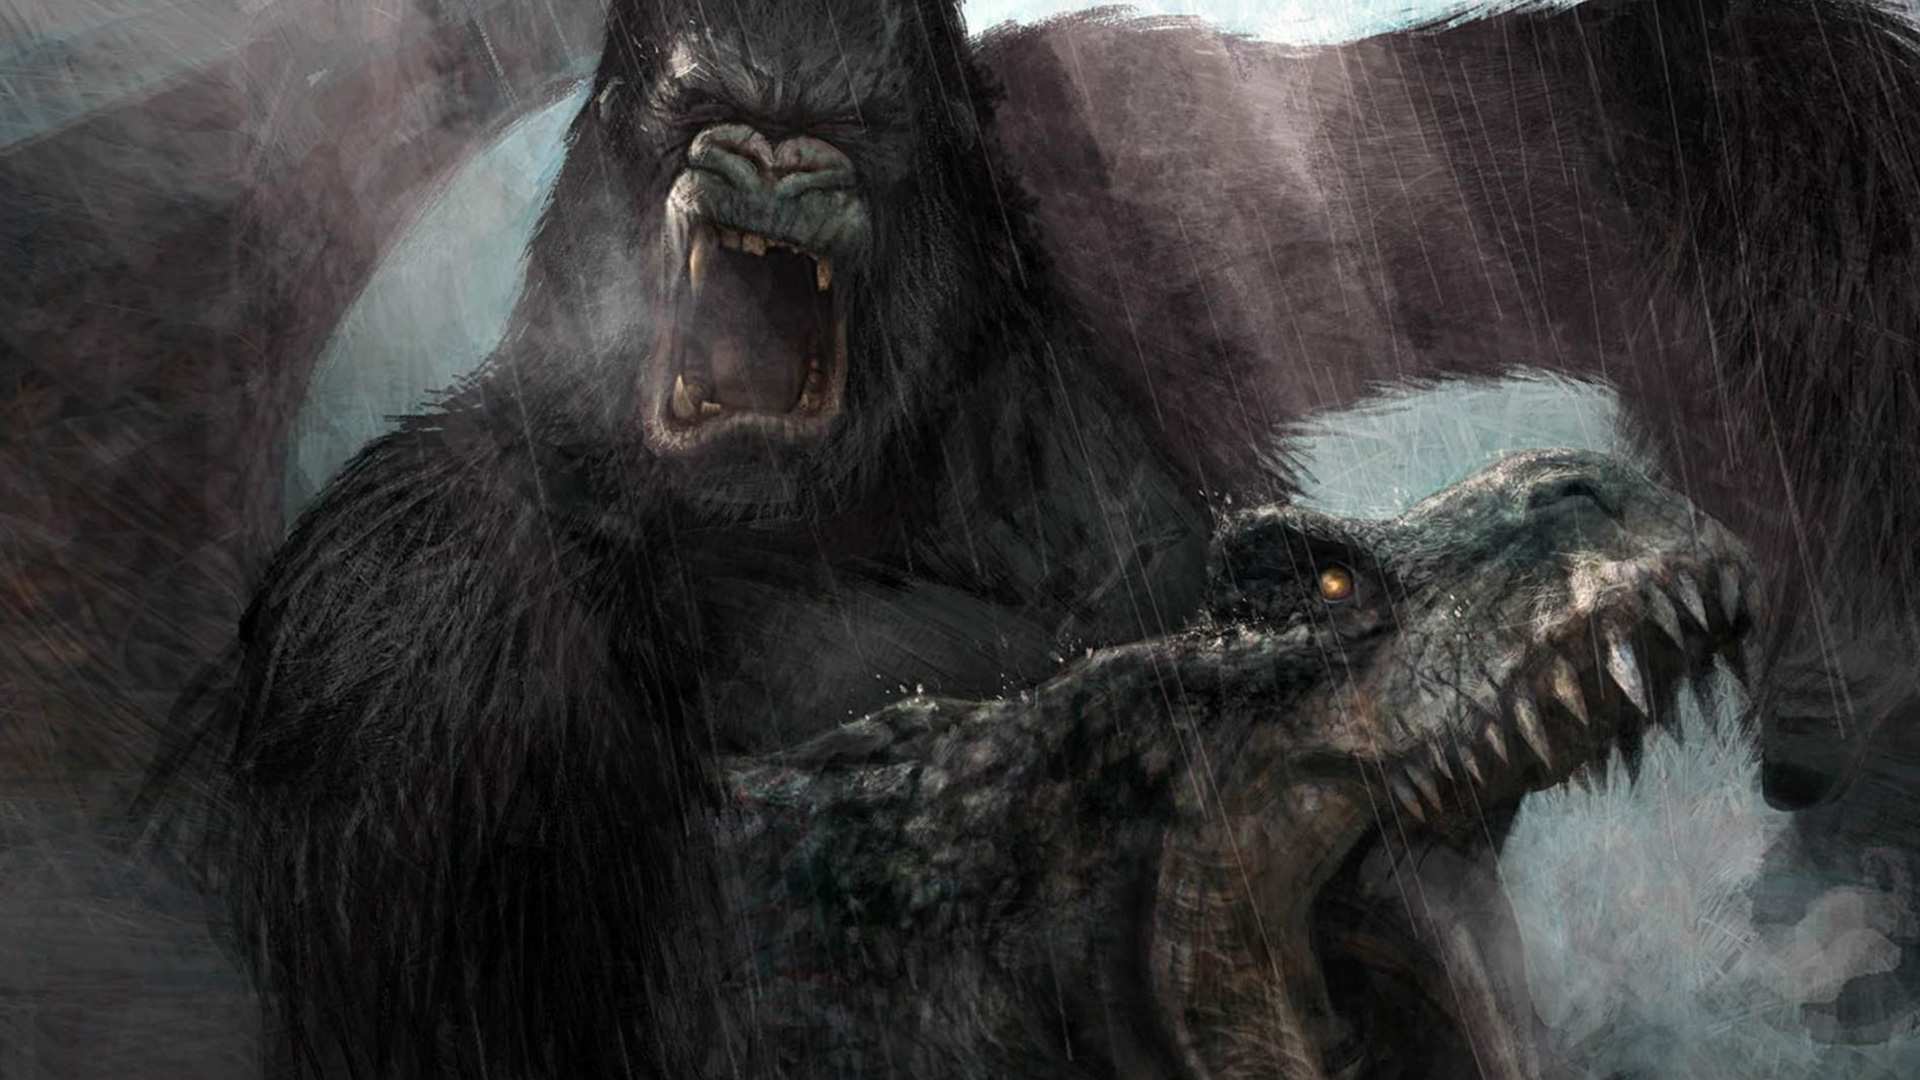 Peter Jackson's King Kong: The Official Game of the Movie Wallpaper in 1920x1080